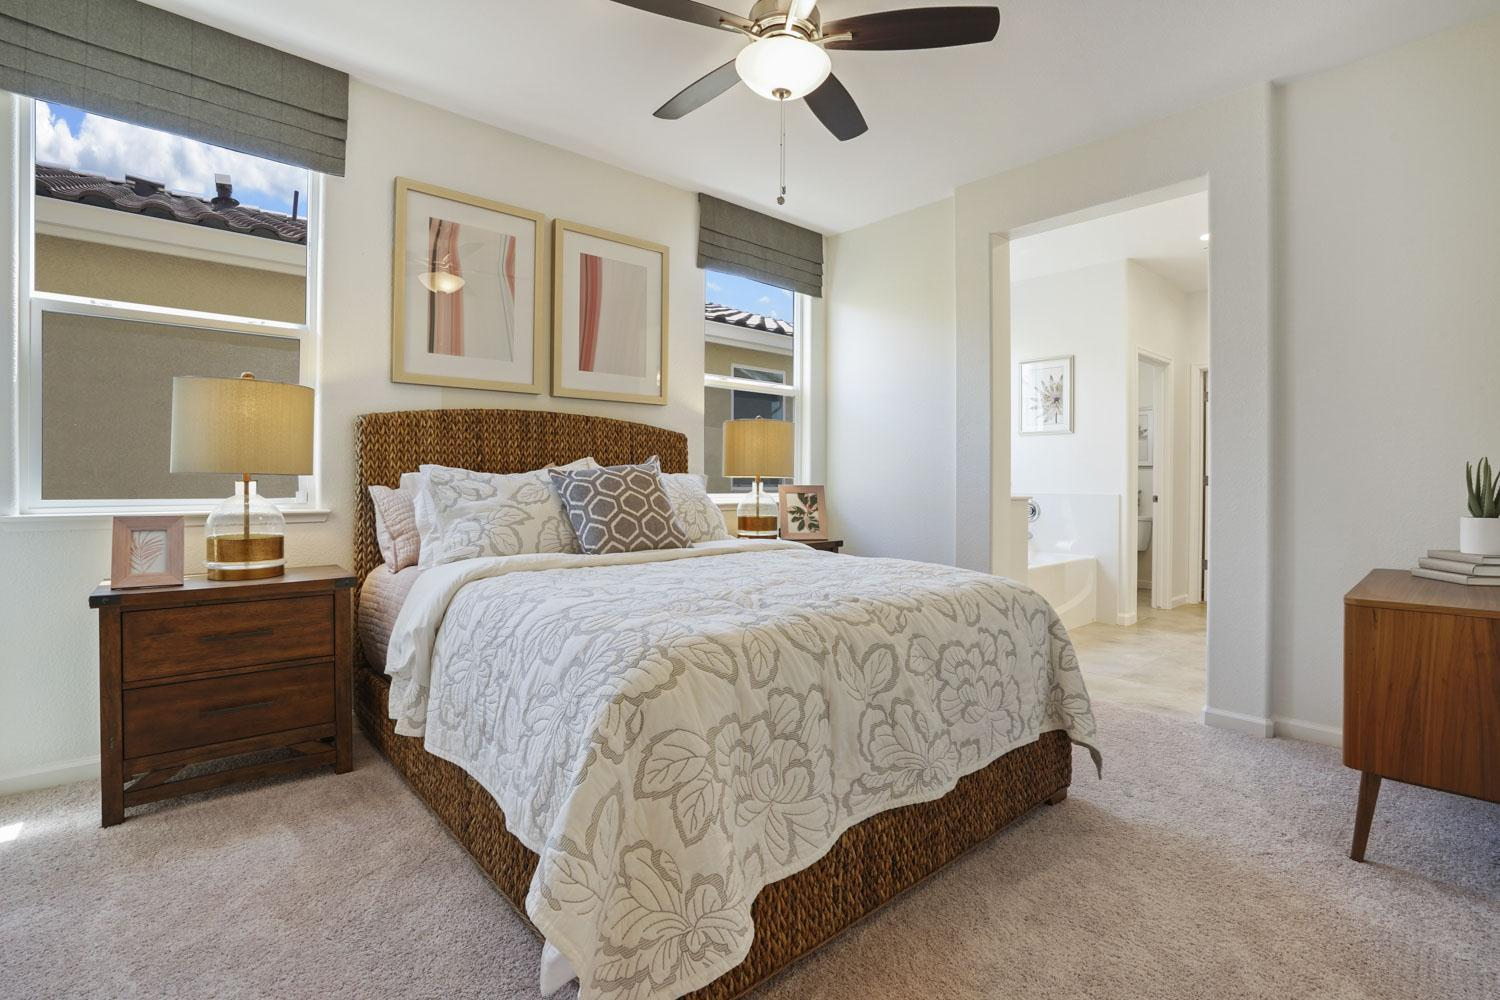 Bedroom featured in The Rainier By Stonefield Home in Merced, CA